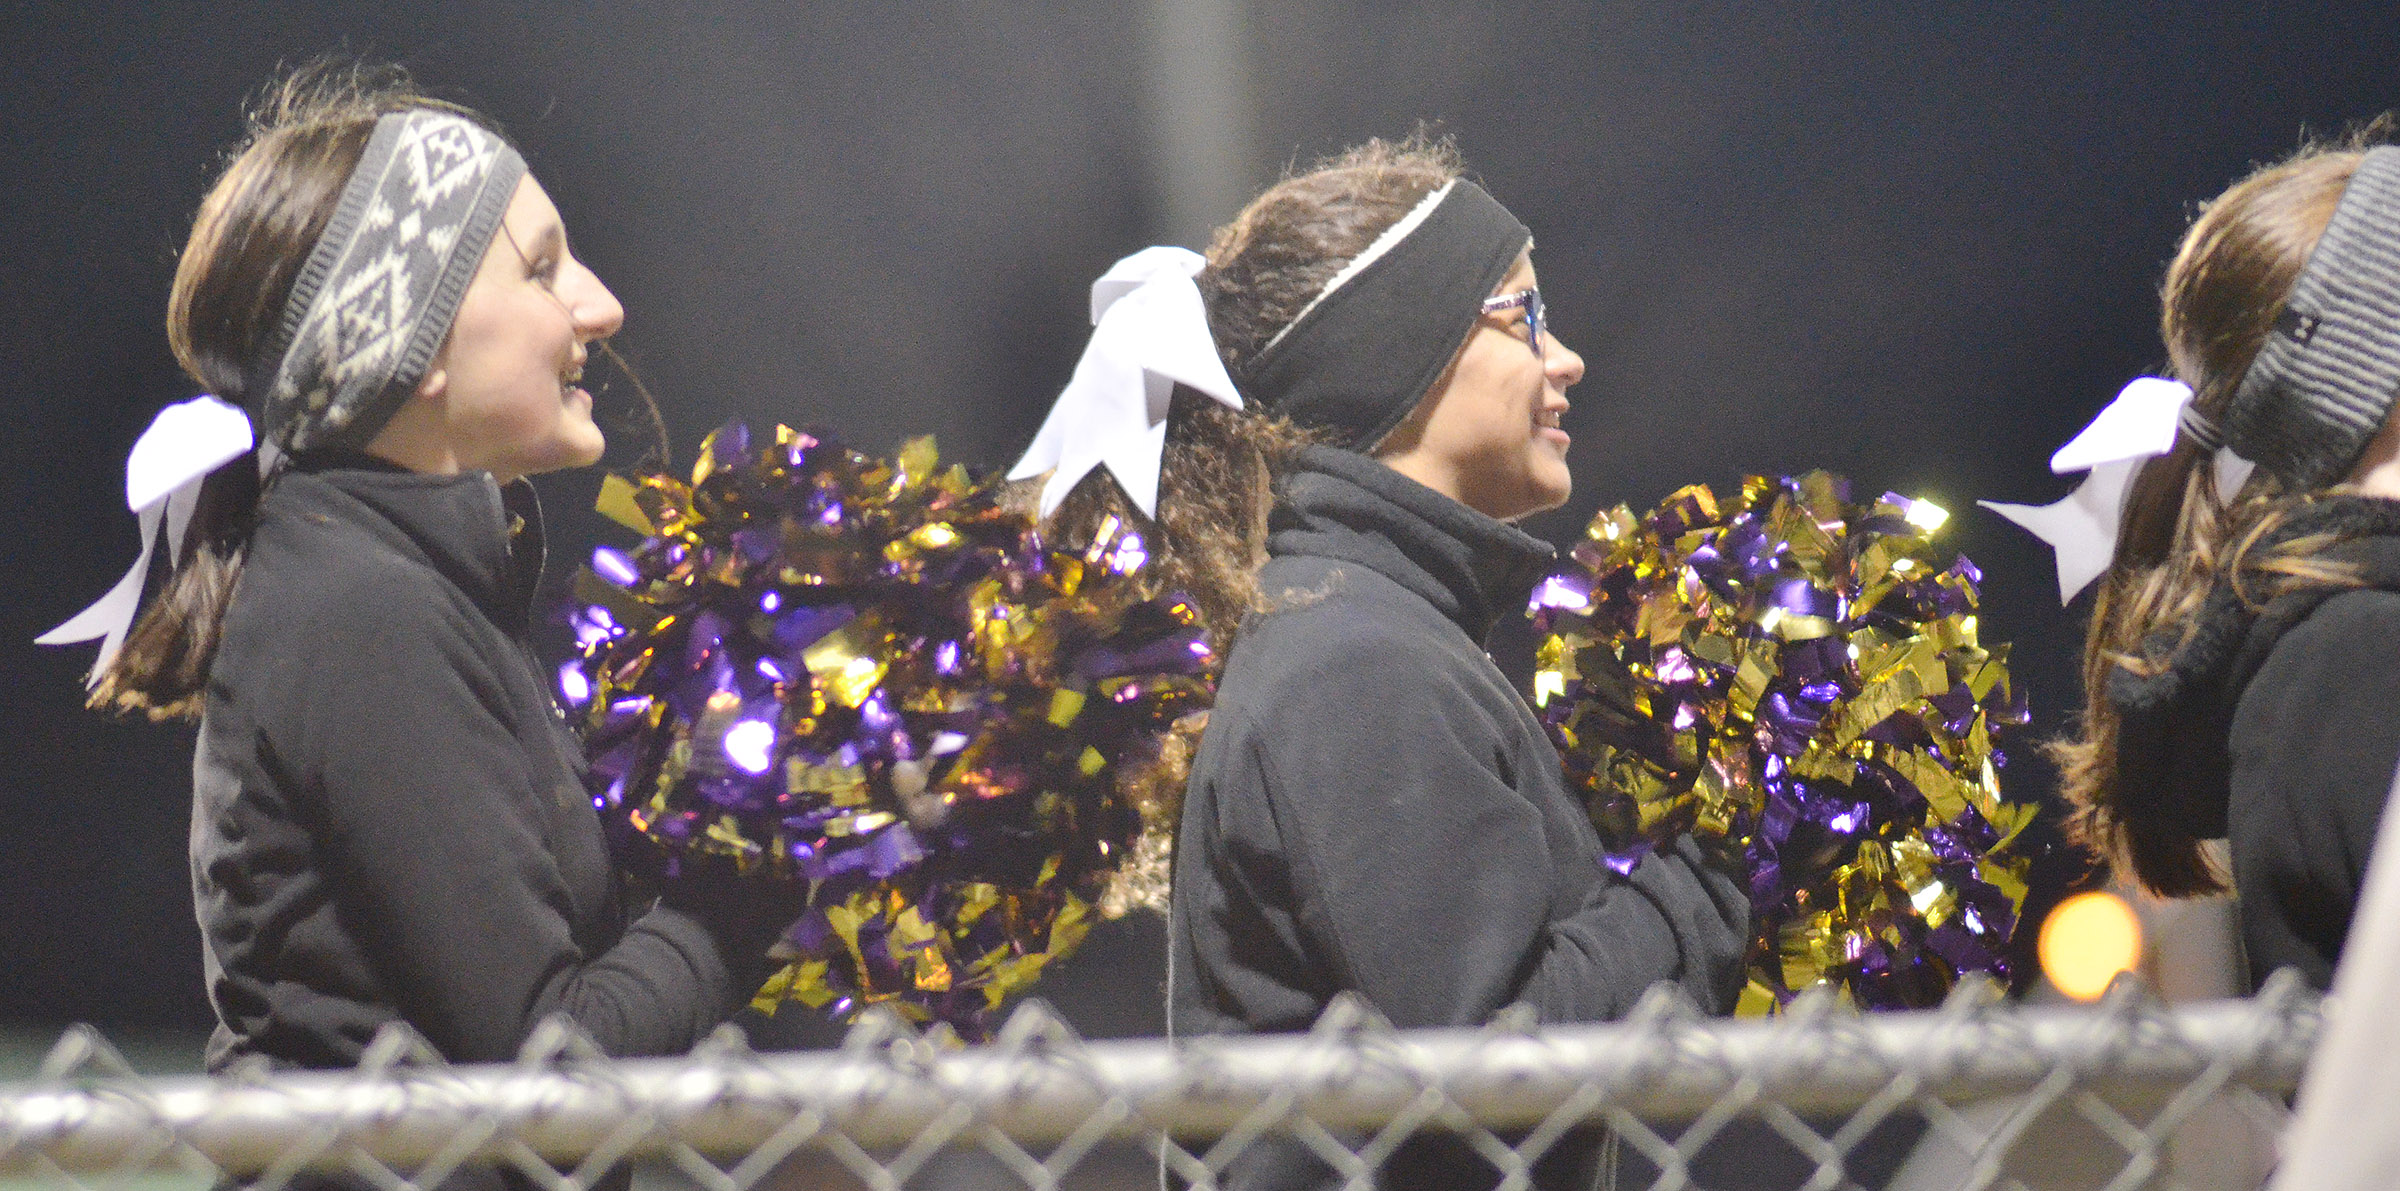 CHS cheerleaders Zoe McAninch, at left, and Taliyah Hazelwood, sophomores, cheer for the Eagles.